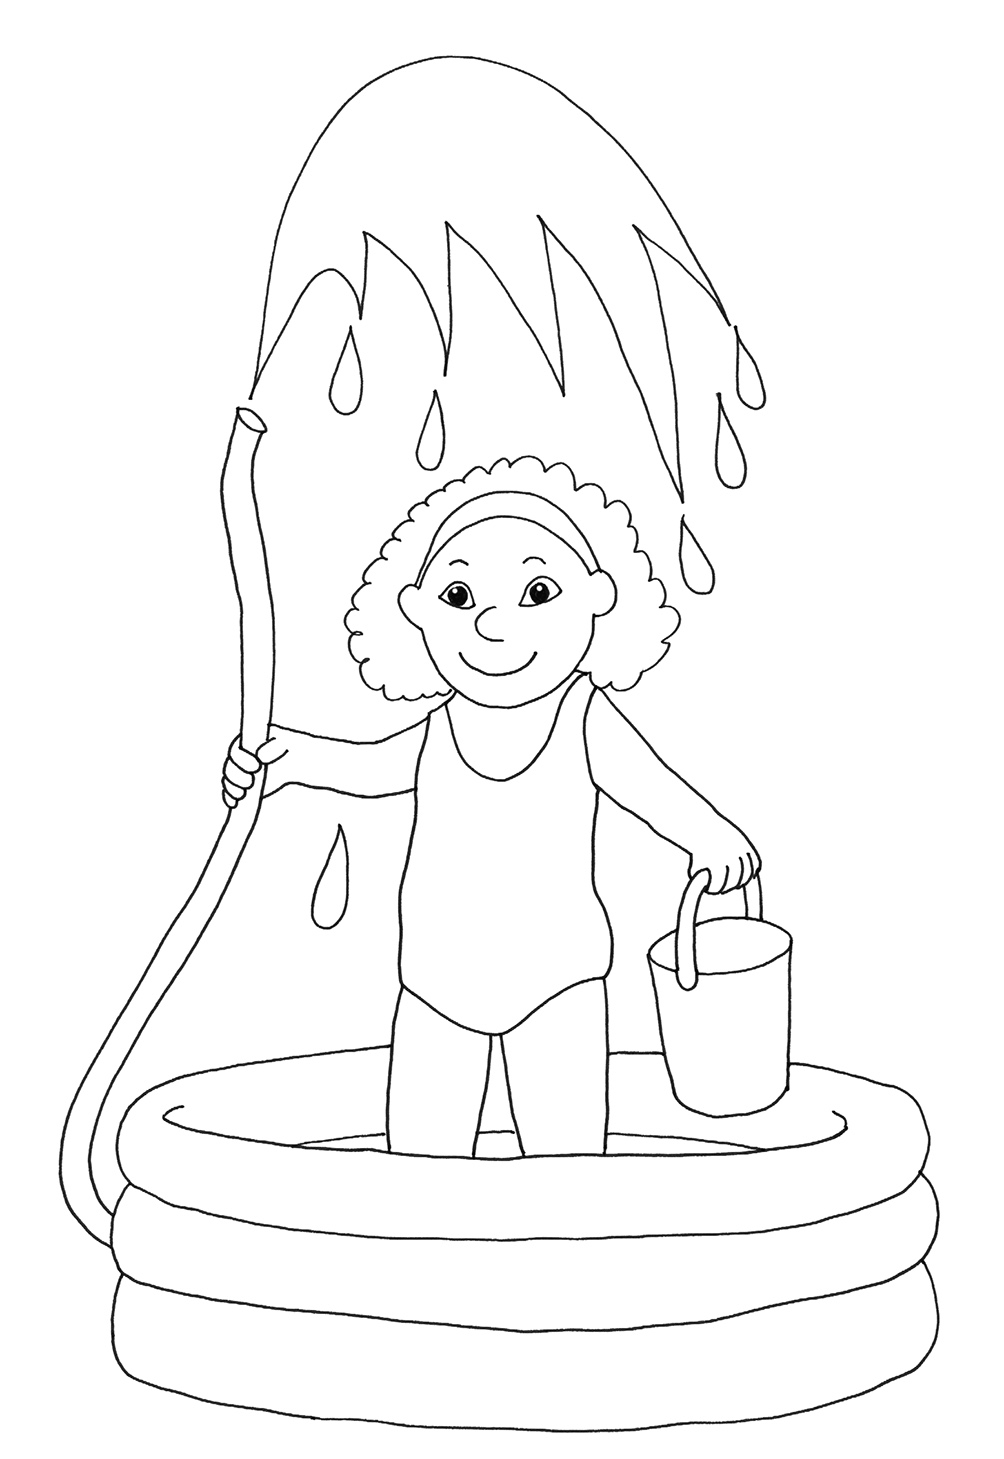 1004x1459 Summer Coloring Pages Girl Water Pool Inside